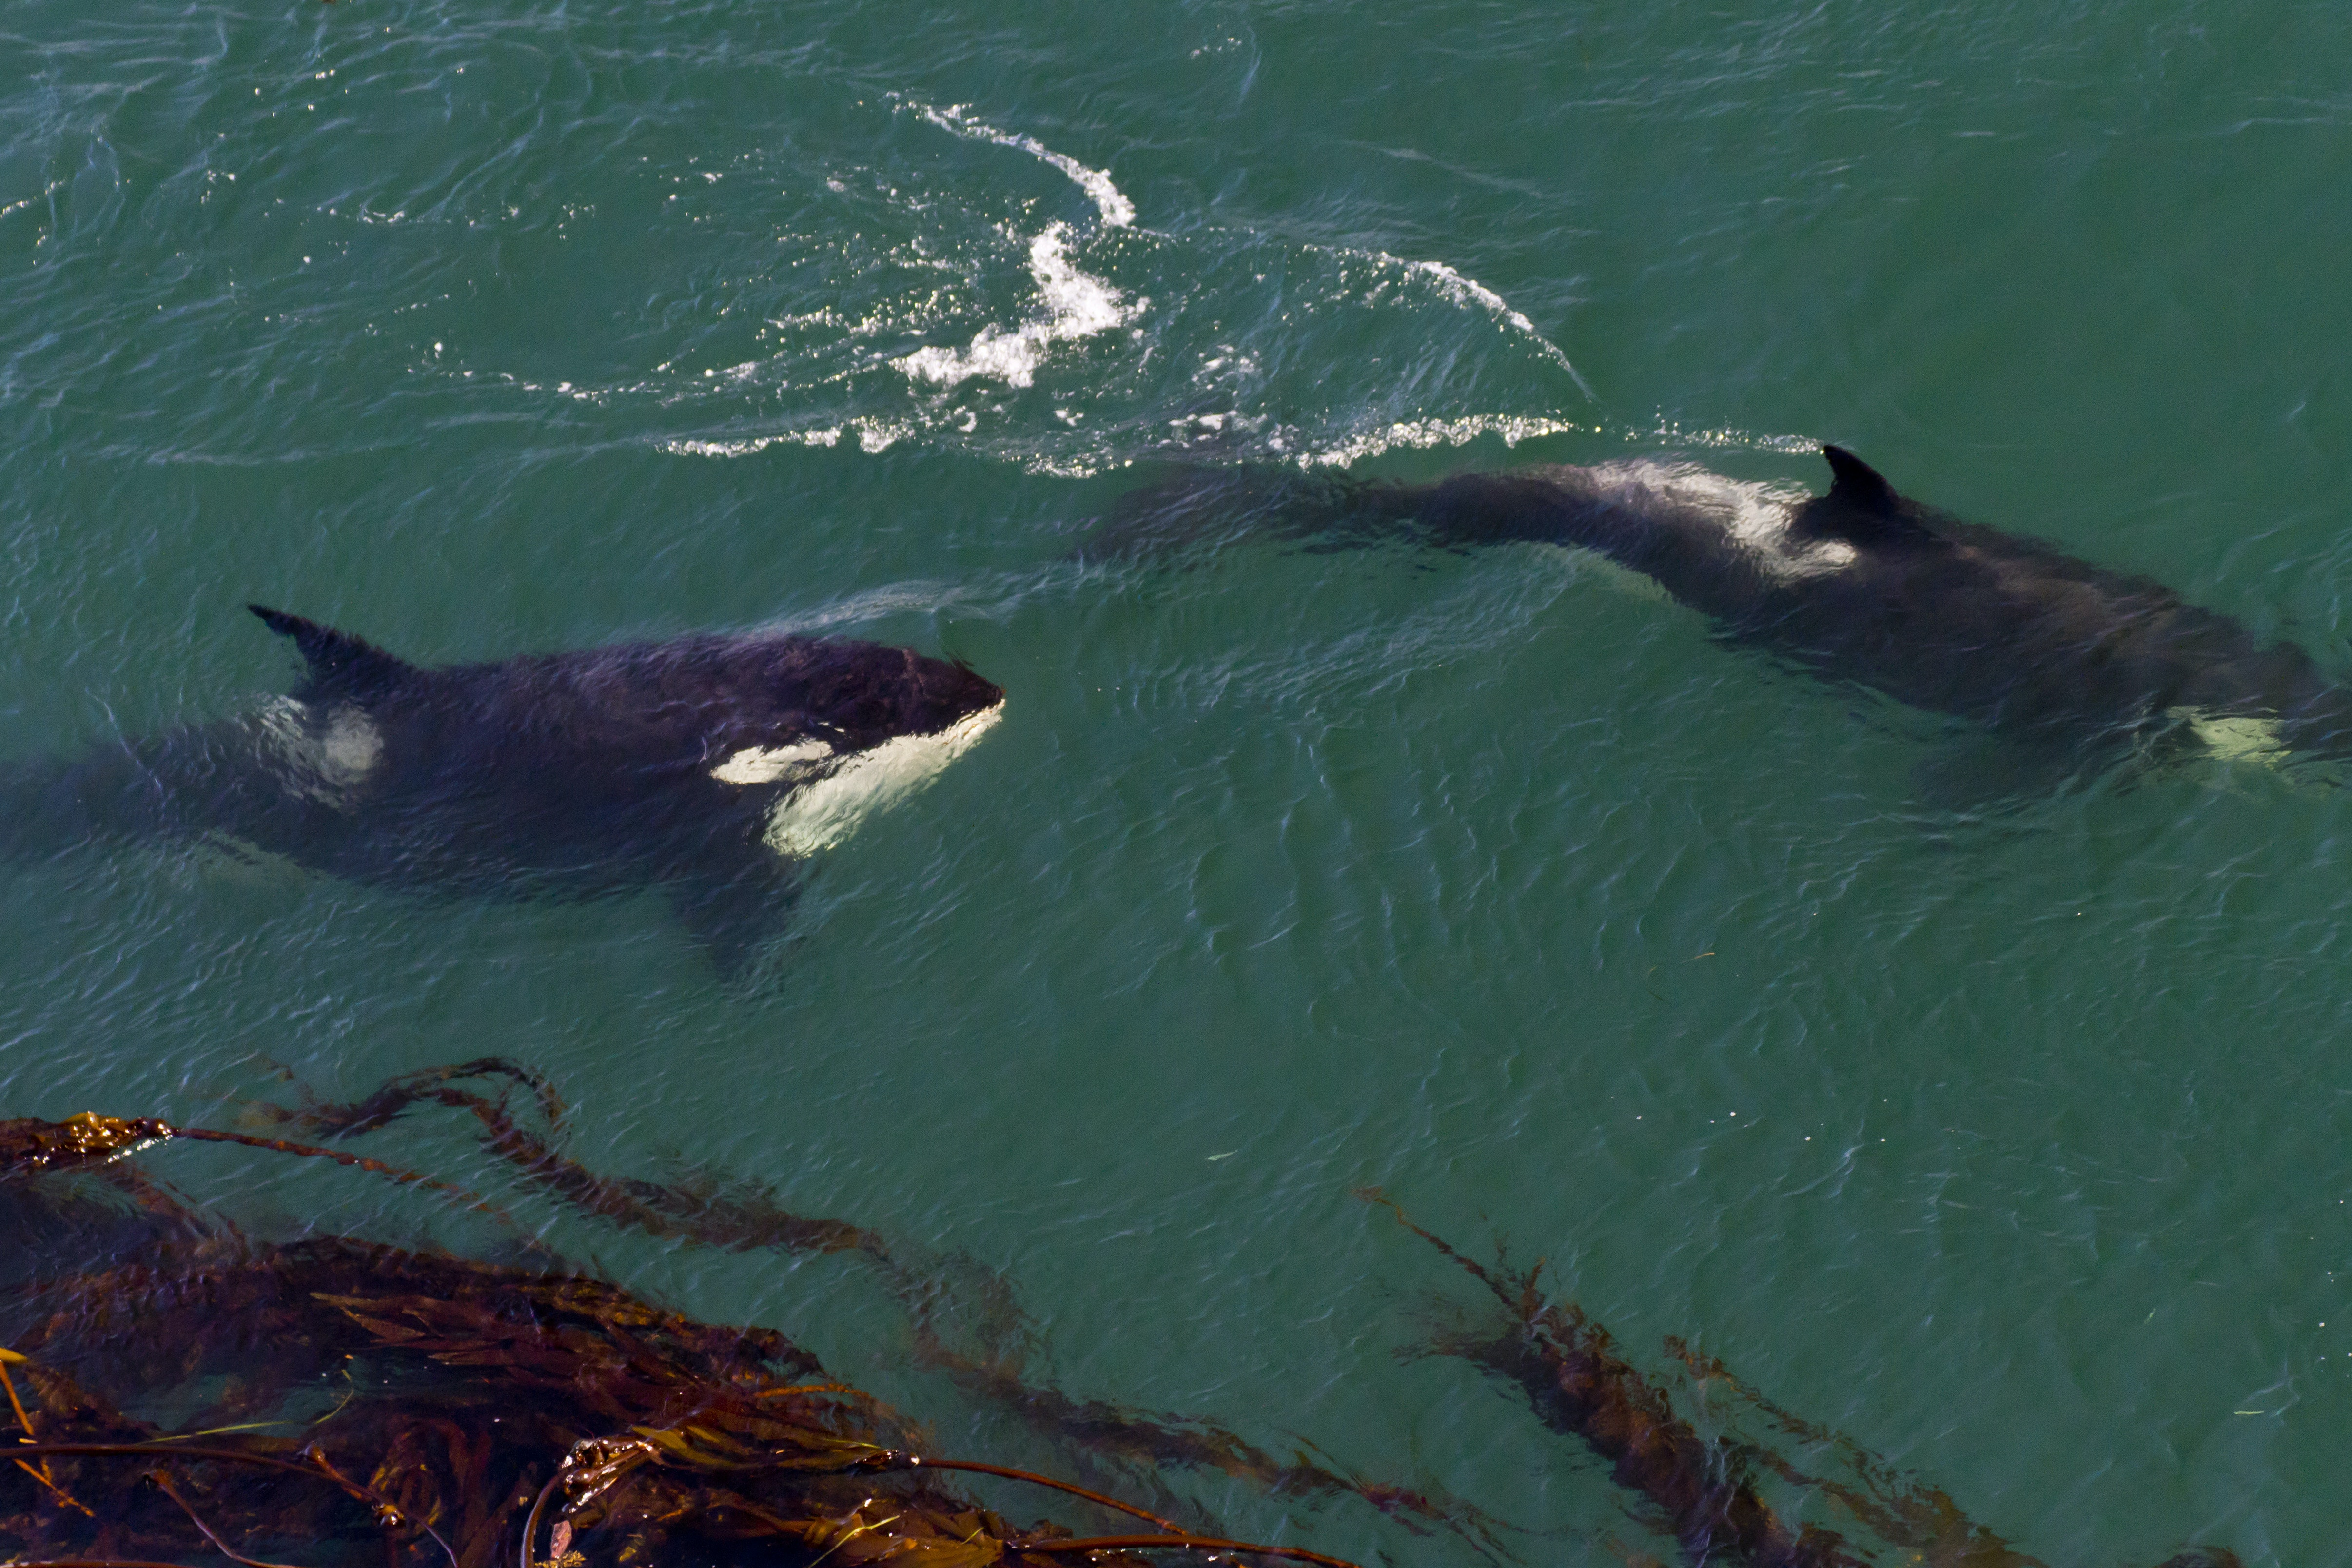 Why the southern resident killer whales should have the same rights as people